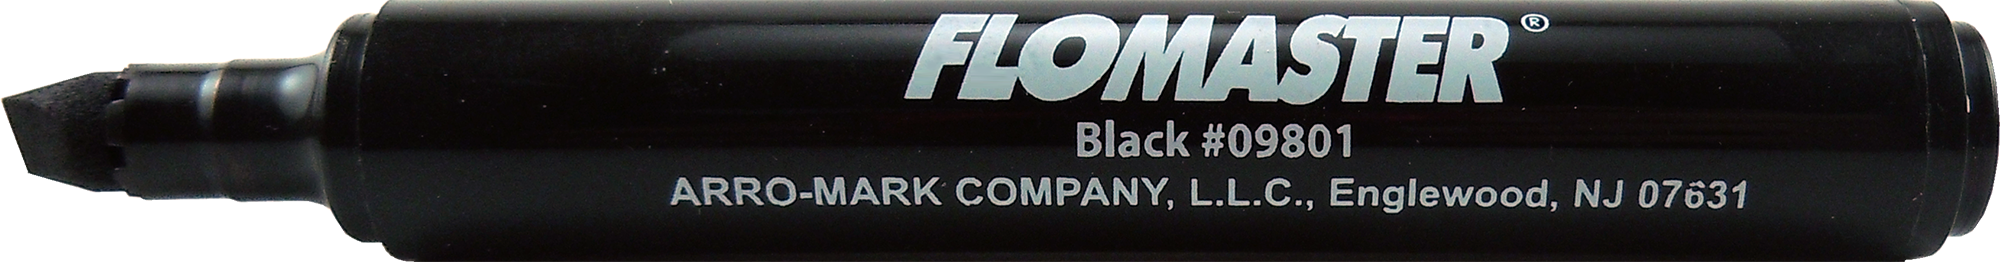 Flomaster Capillary Action Removable Markers